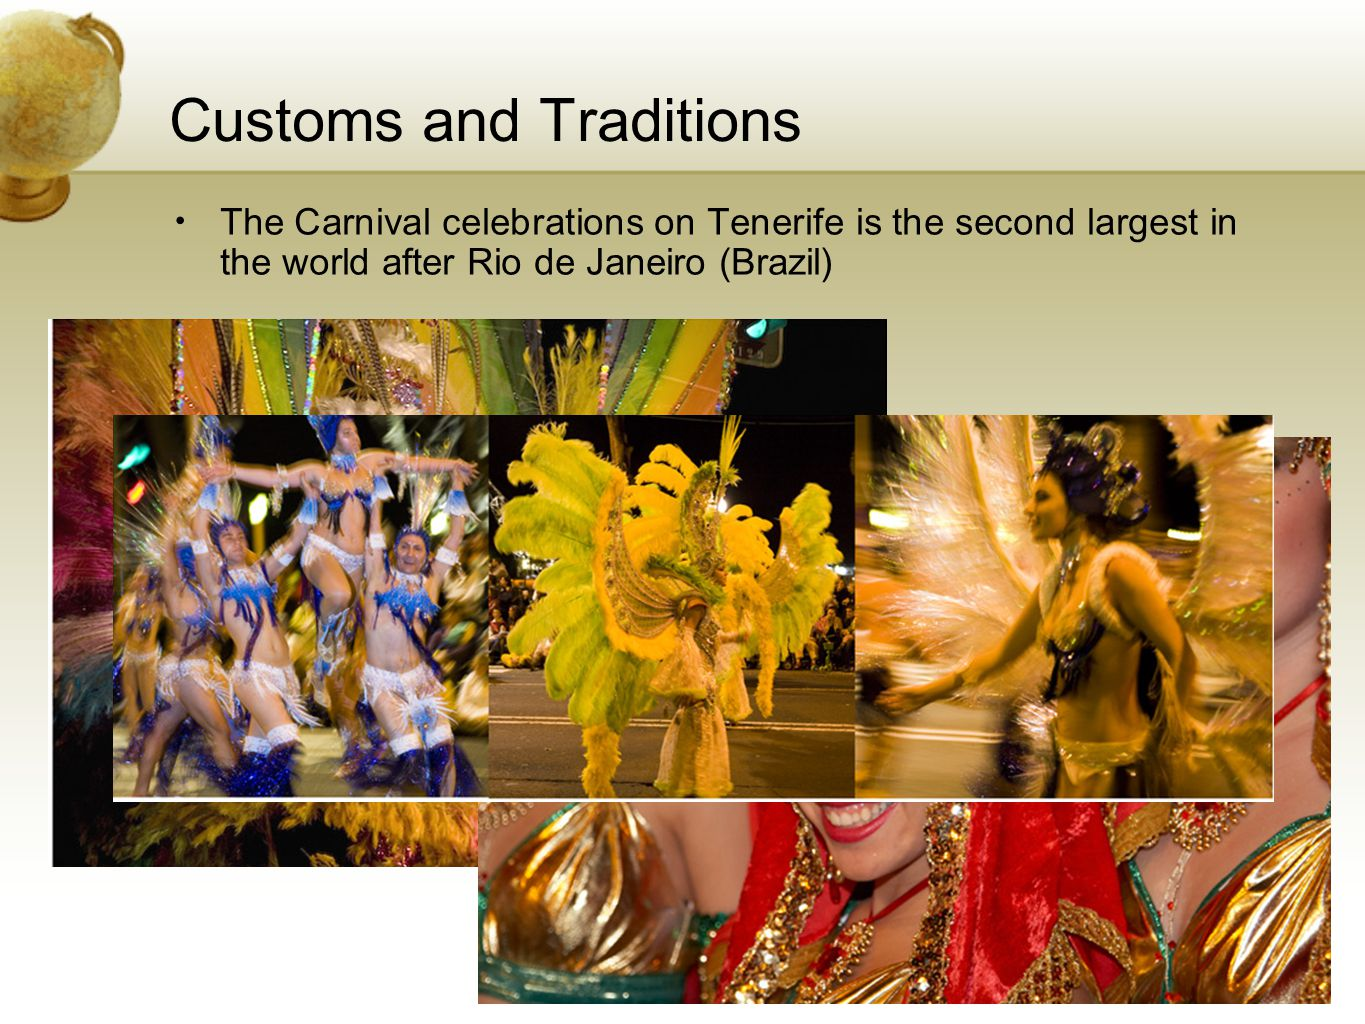 Customs and Traditions The Carnival celebrations on Tenerife is the second largest in the world after Rio de Janeiro (Brazil)